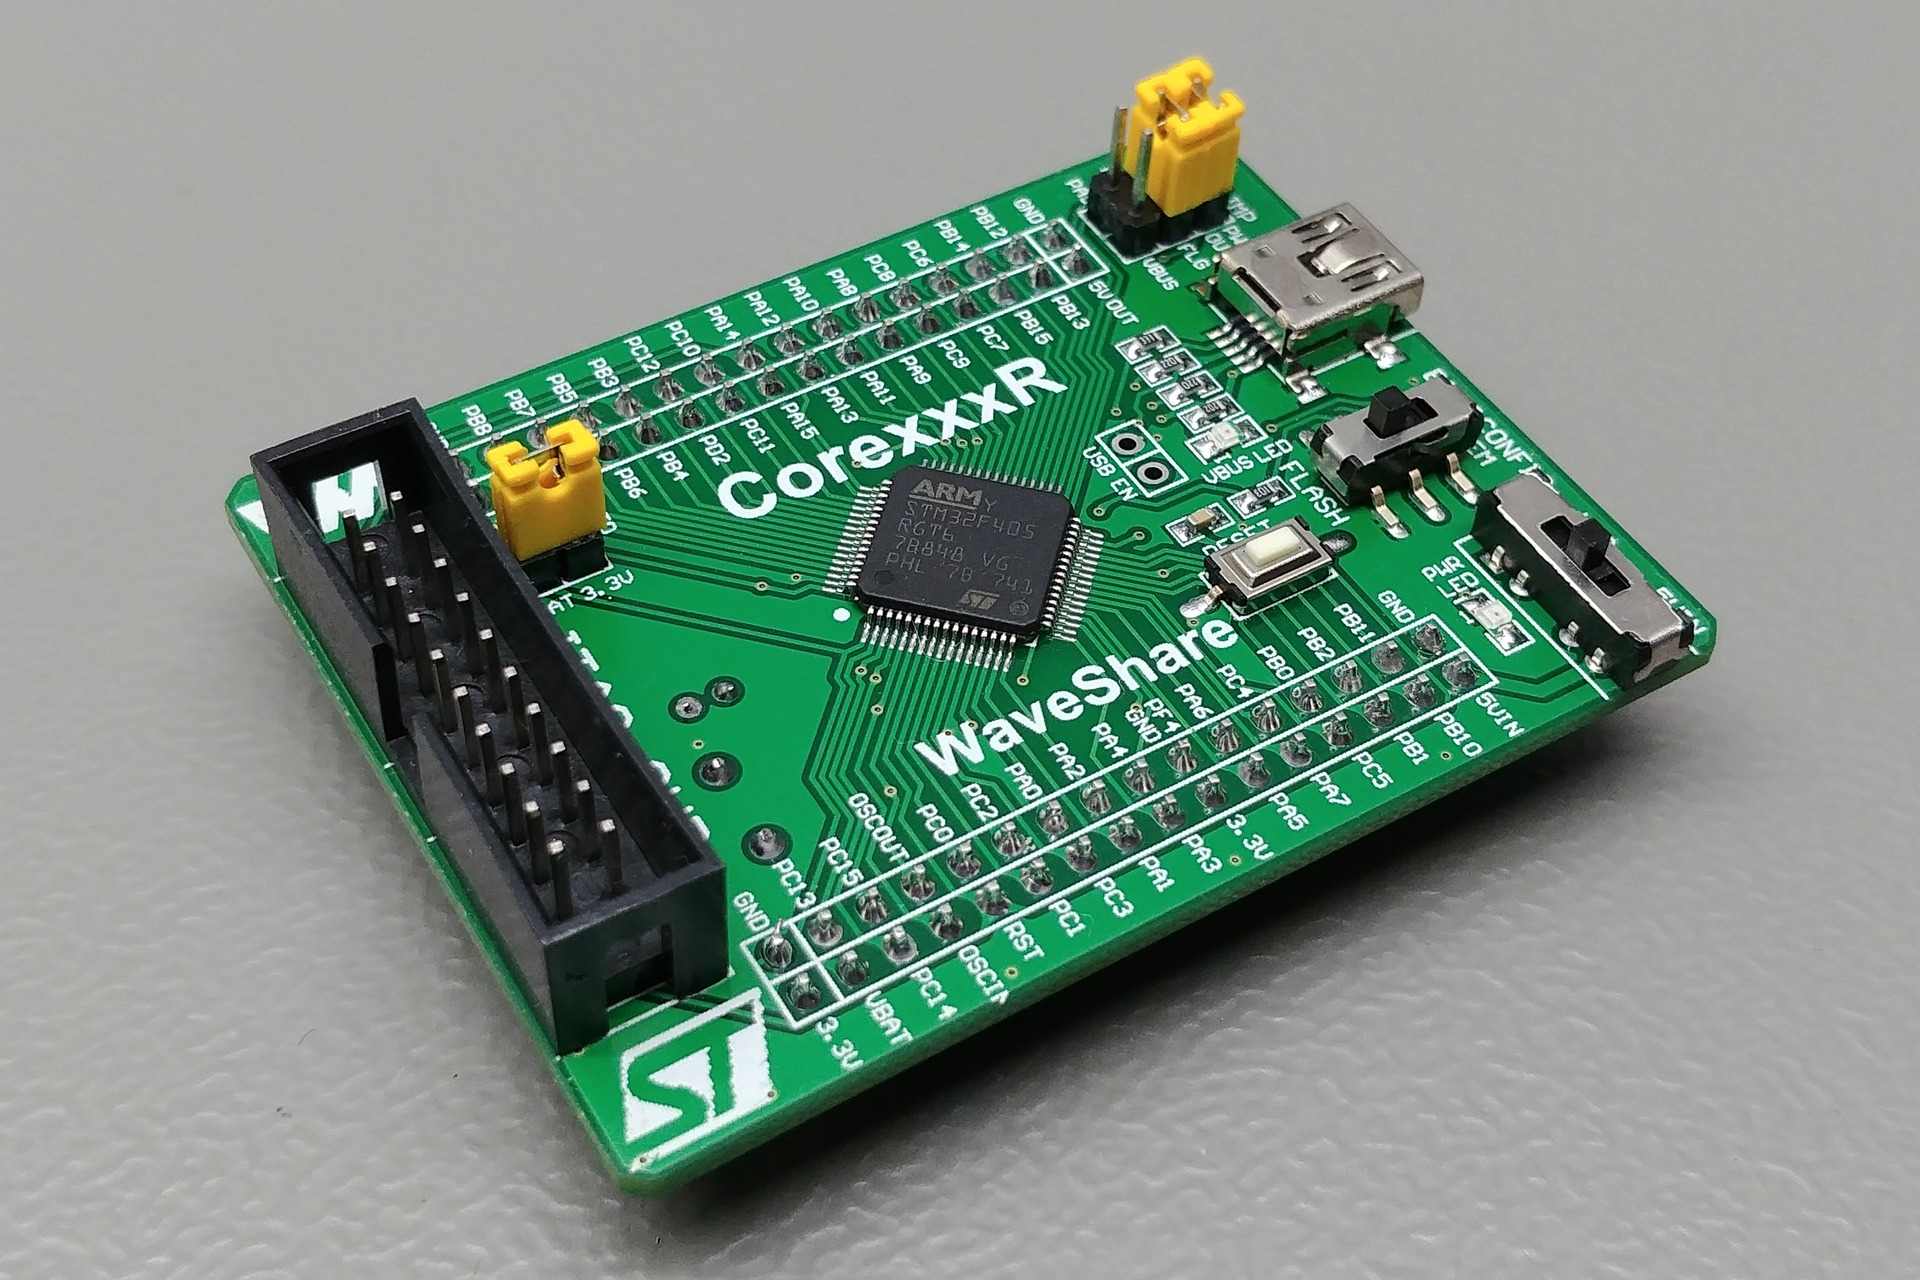 WaveShare Core405R board: Perspective view